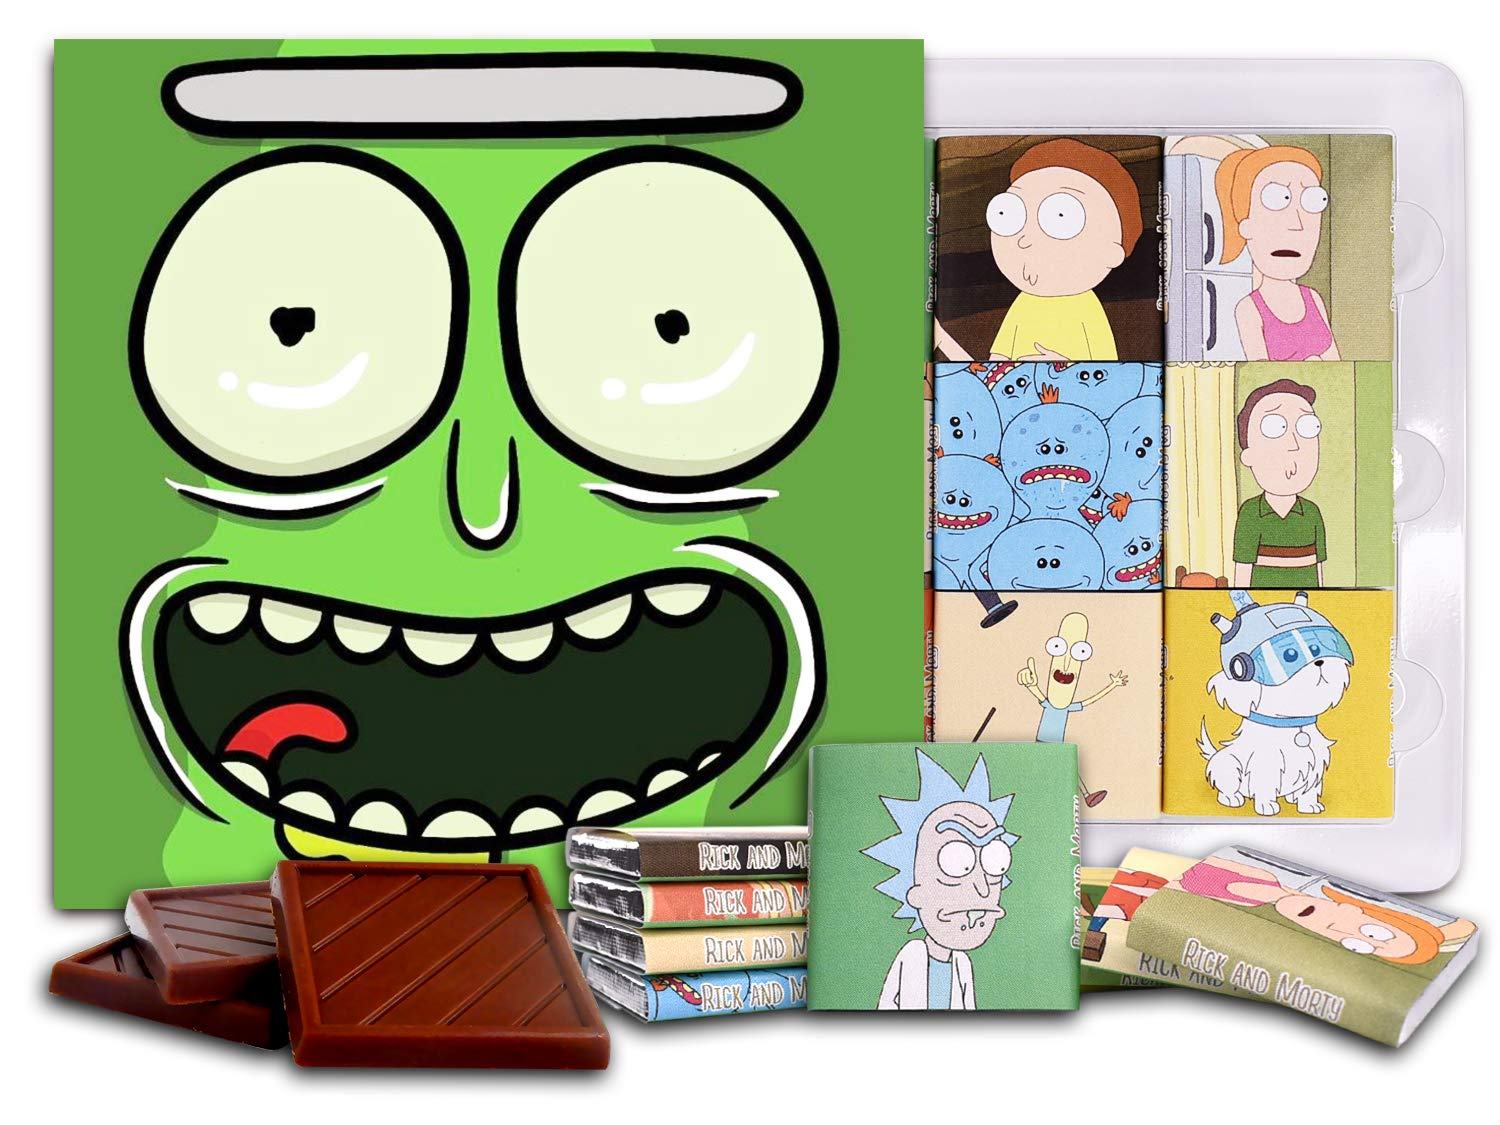 DA CHOCOLATE Candy Souvenir RICK and MORTY Chocolate Gift Set 5x5in 1 box (Pickle Rick)